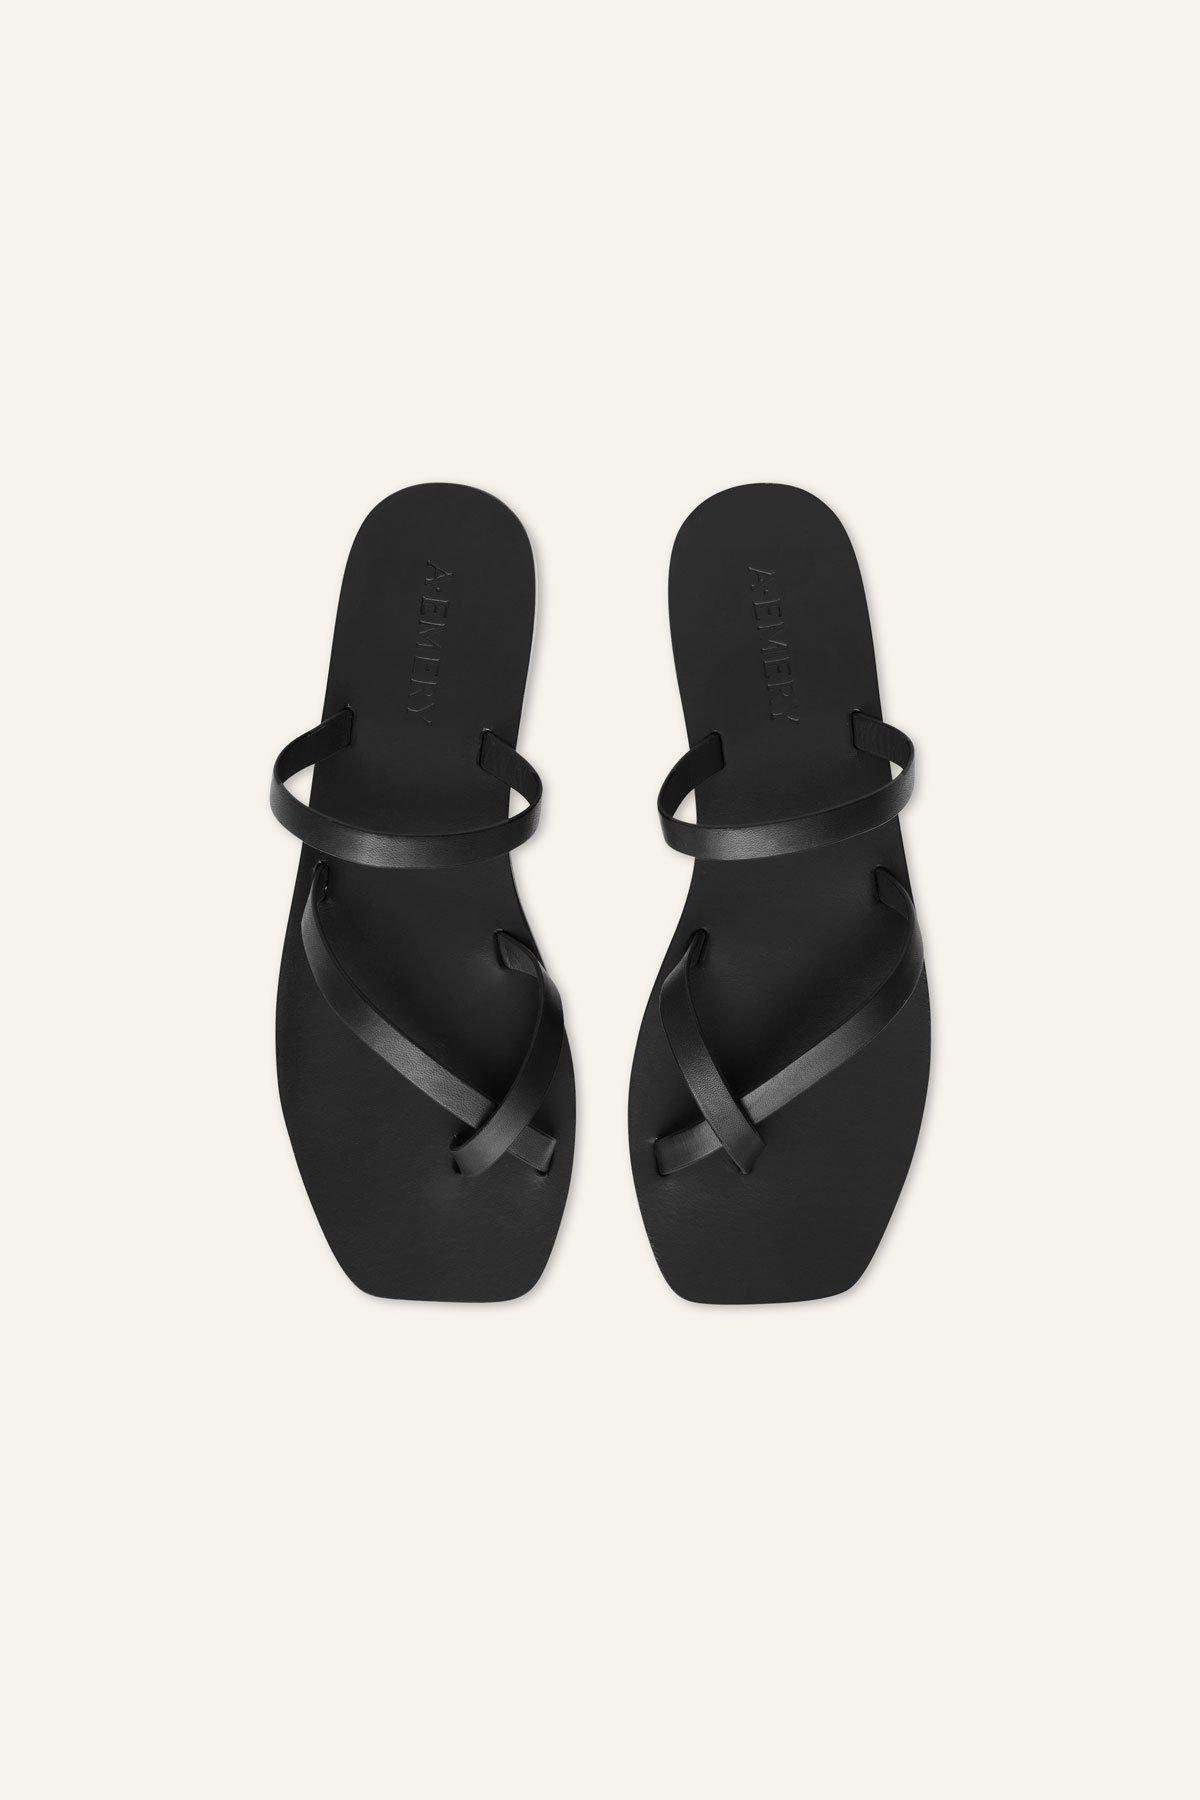 The Colby Sandal